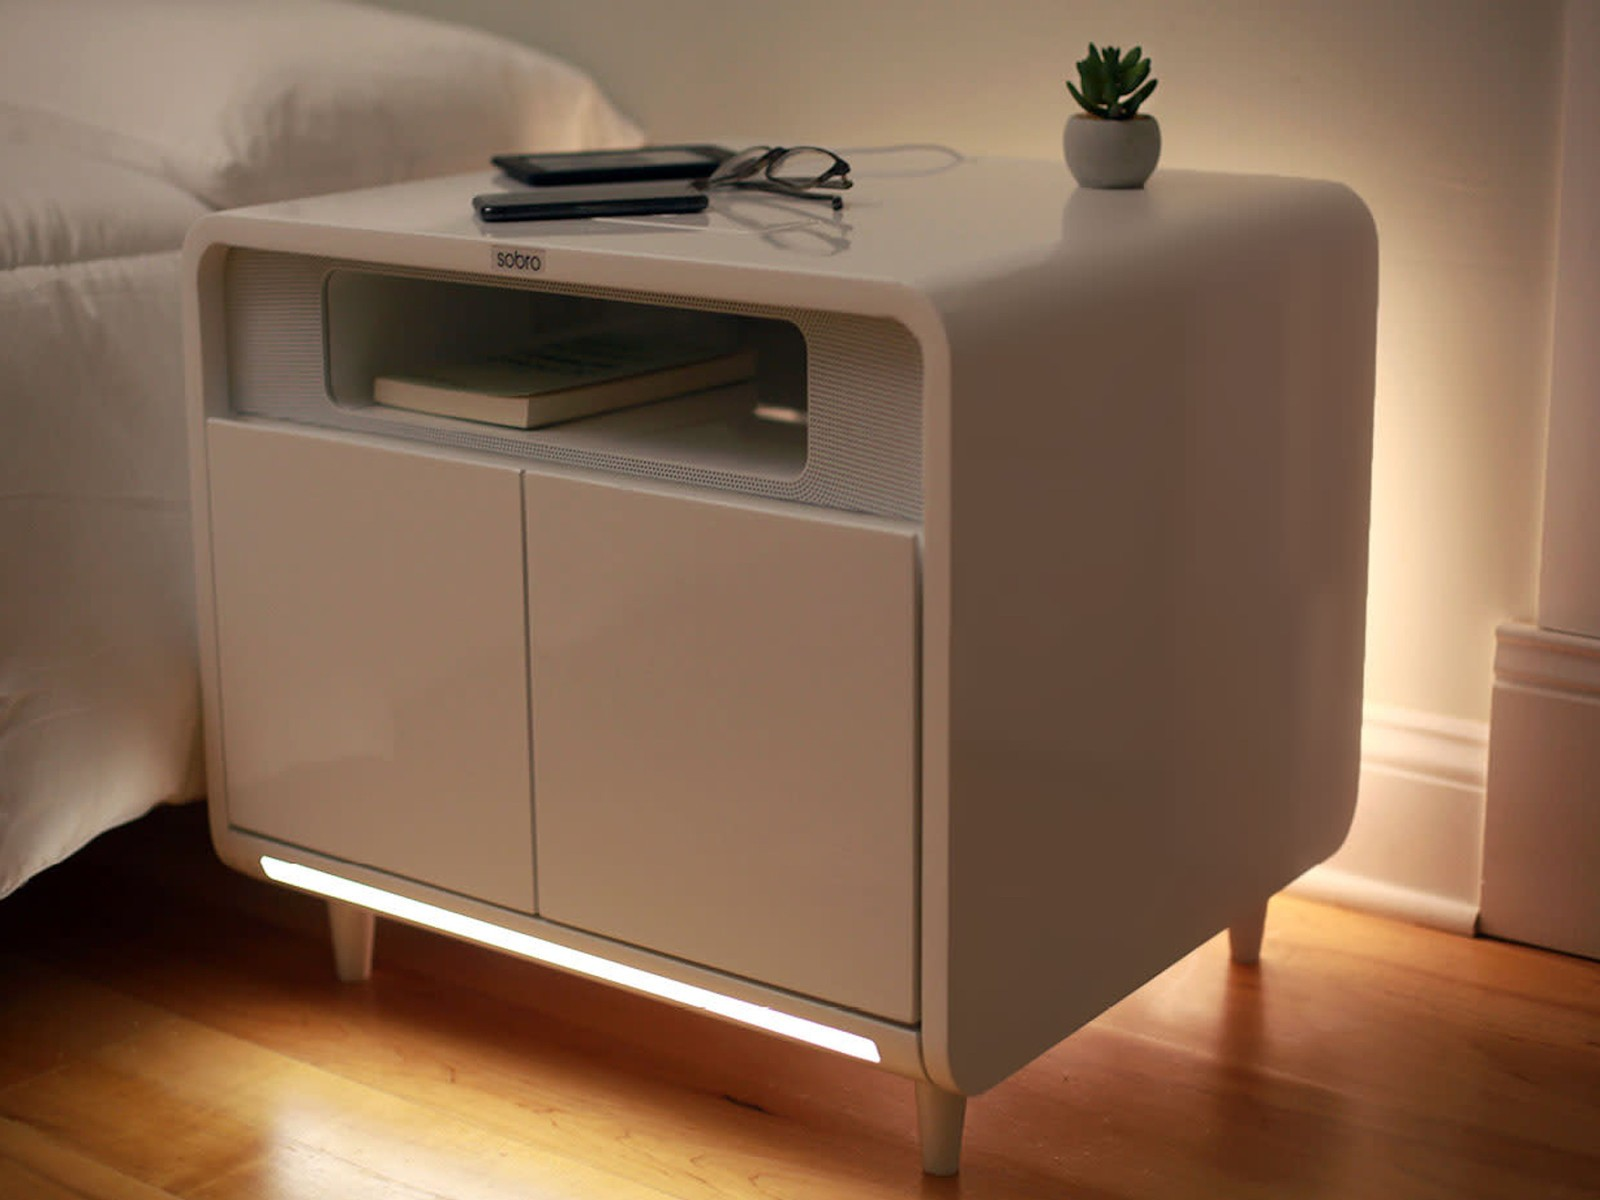 the sobro smart side table wants improve your bedside experience sombro hero mini accent usually home water bottle iphone complete with annoying charging cord headphones small